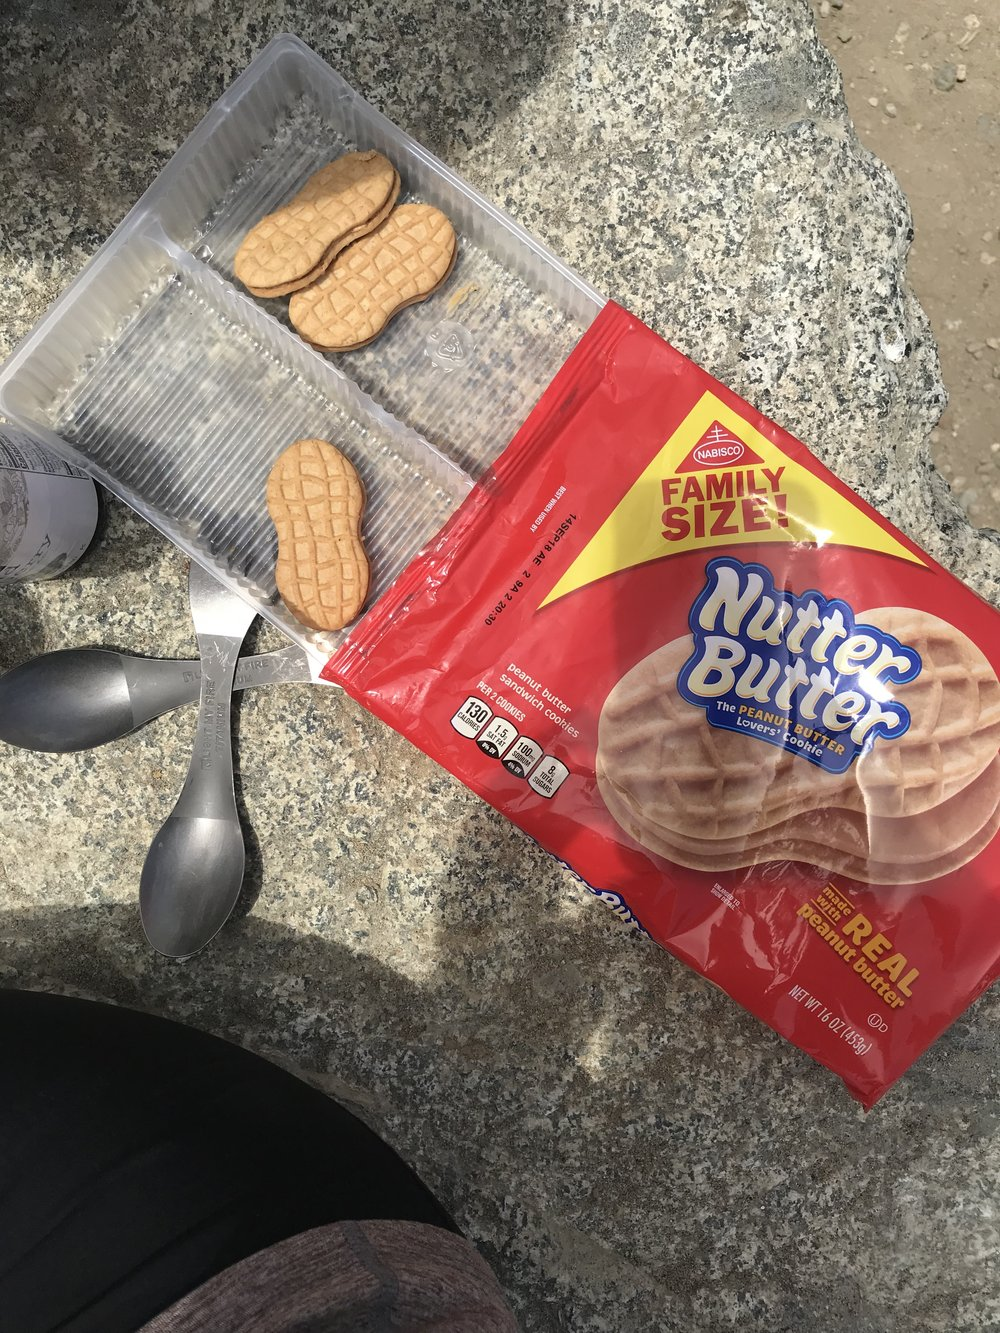 ...a family size package of Nutter Butters, which we ate in 24 hours. No shame!